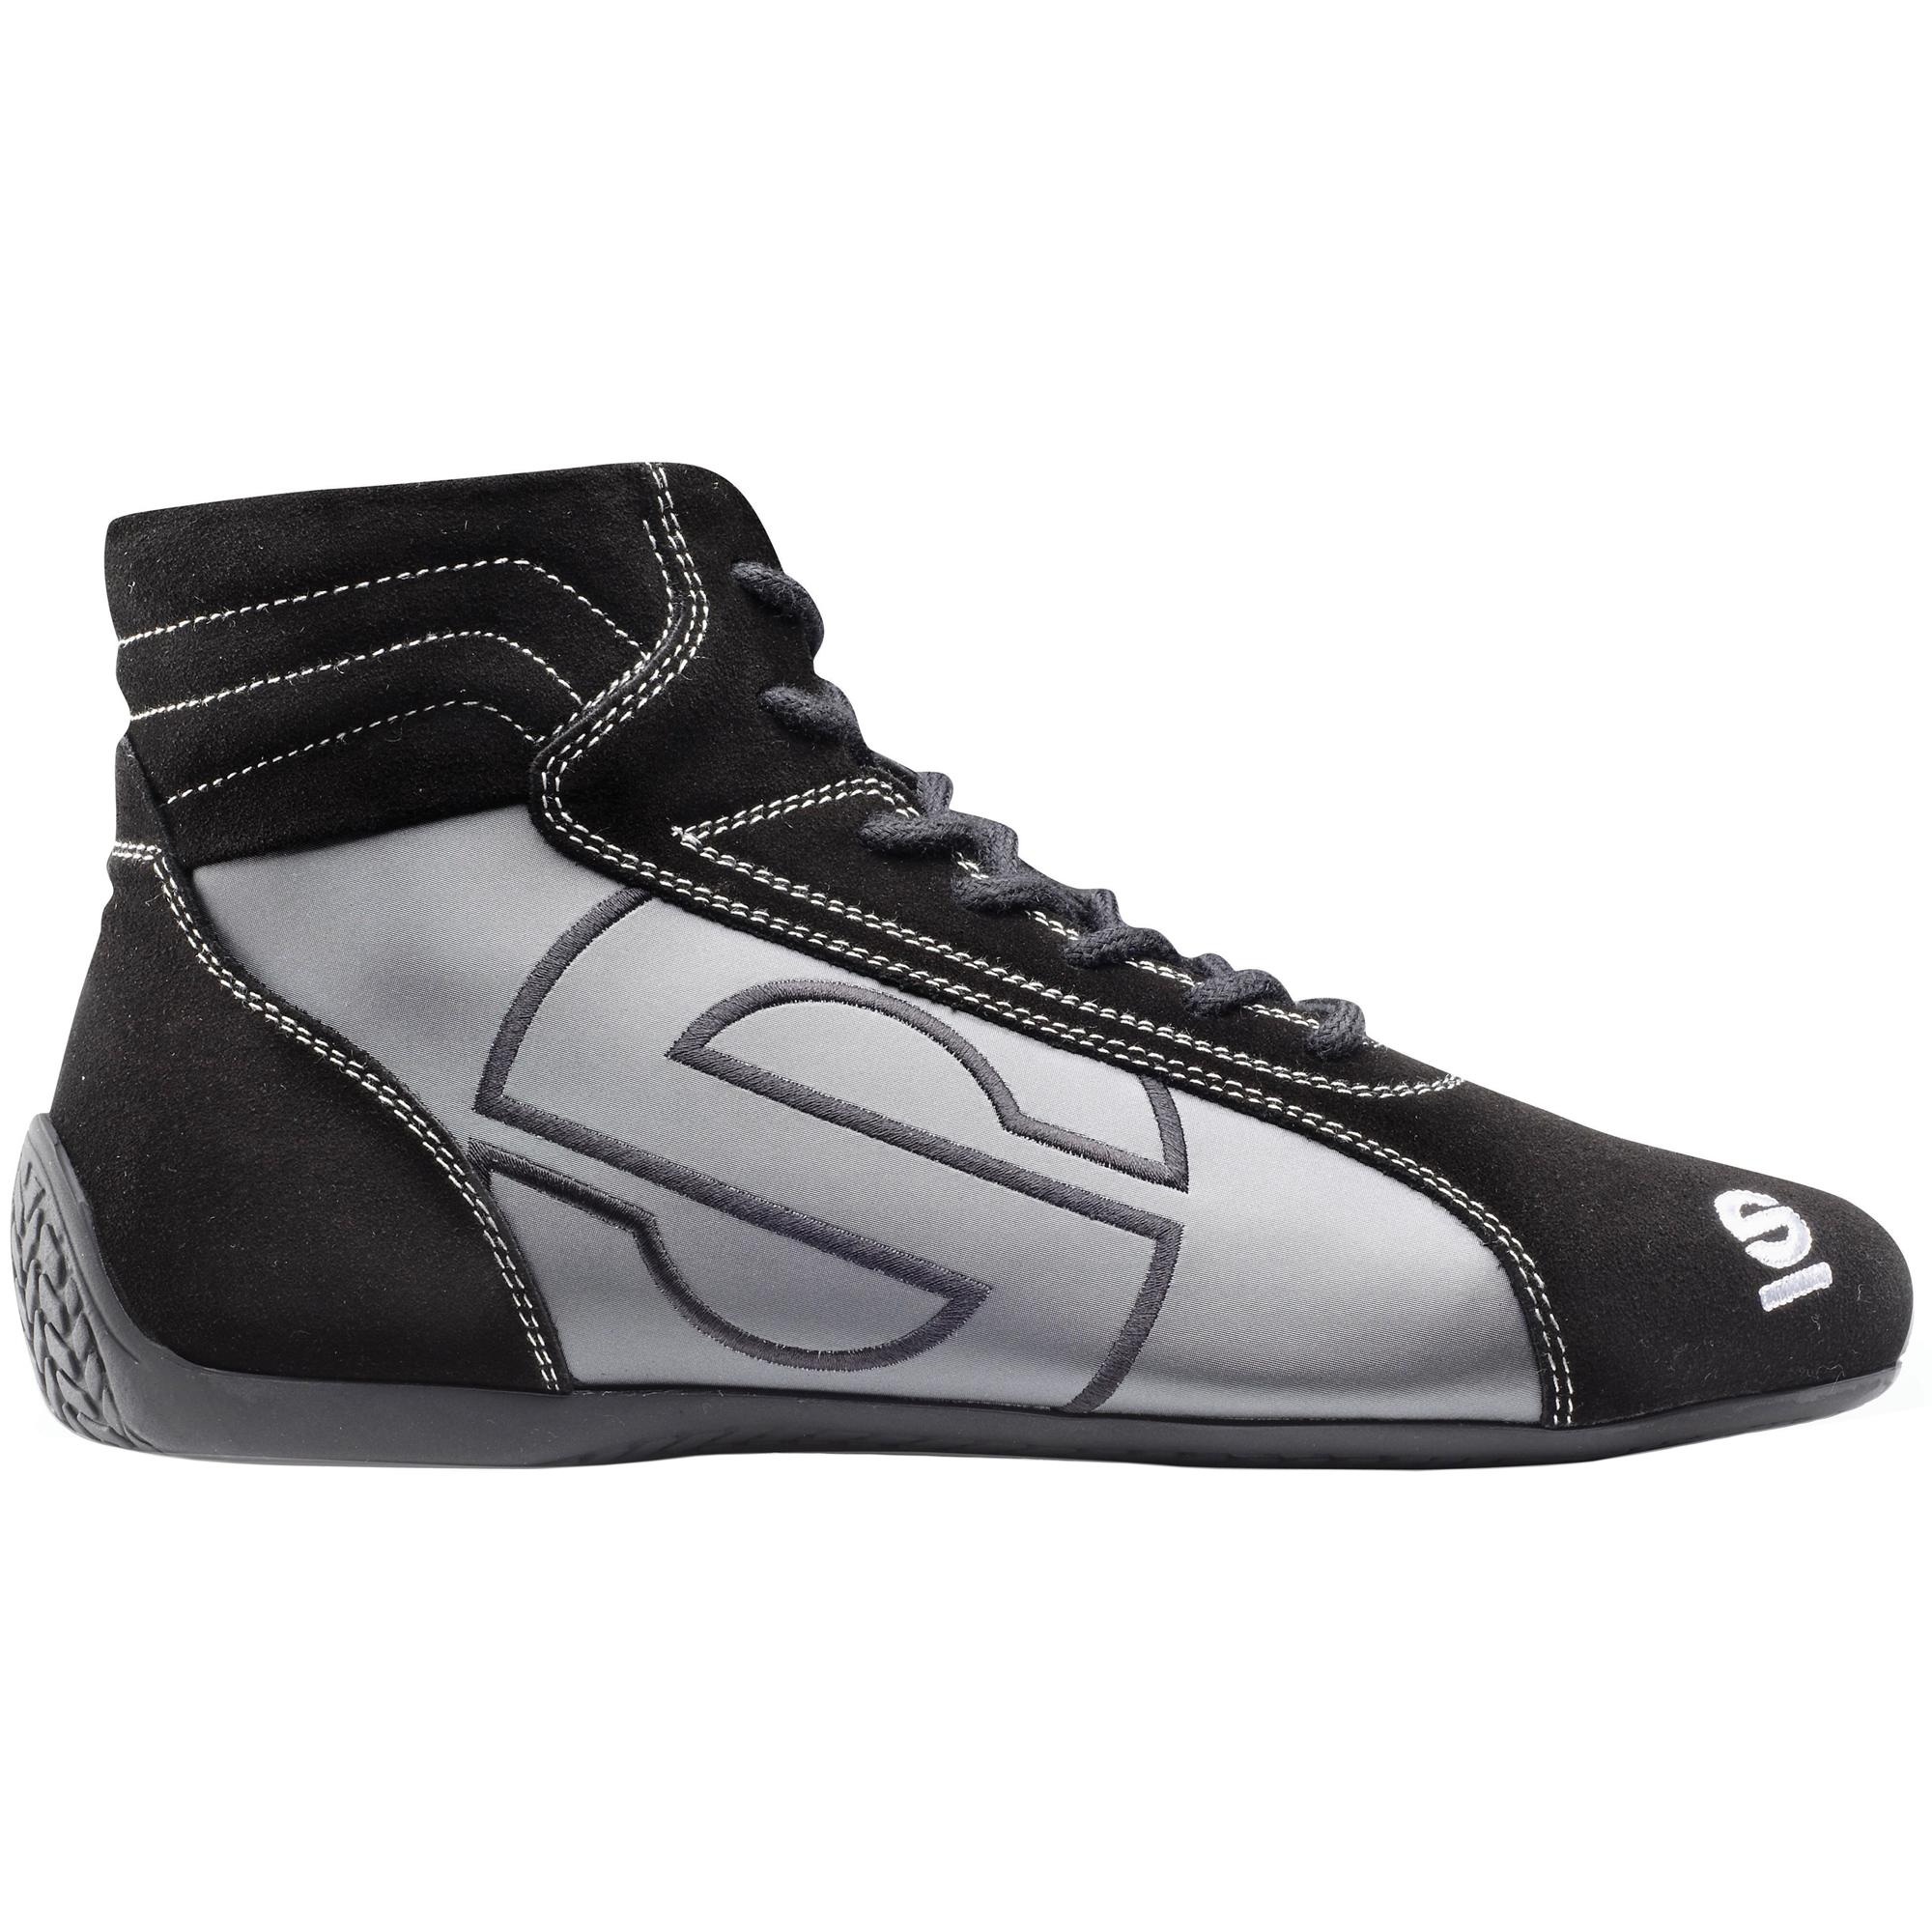 SPARCO SLALOM SL-3 RACE BOOTS BLACK/GREY